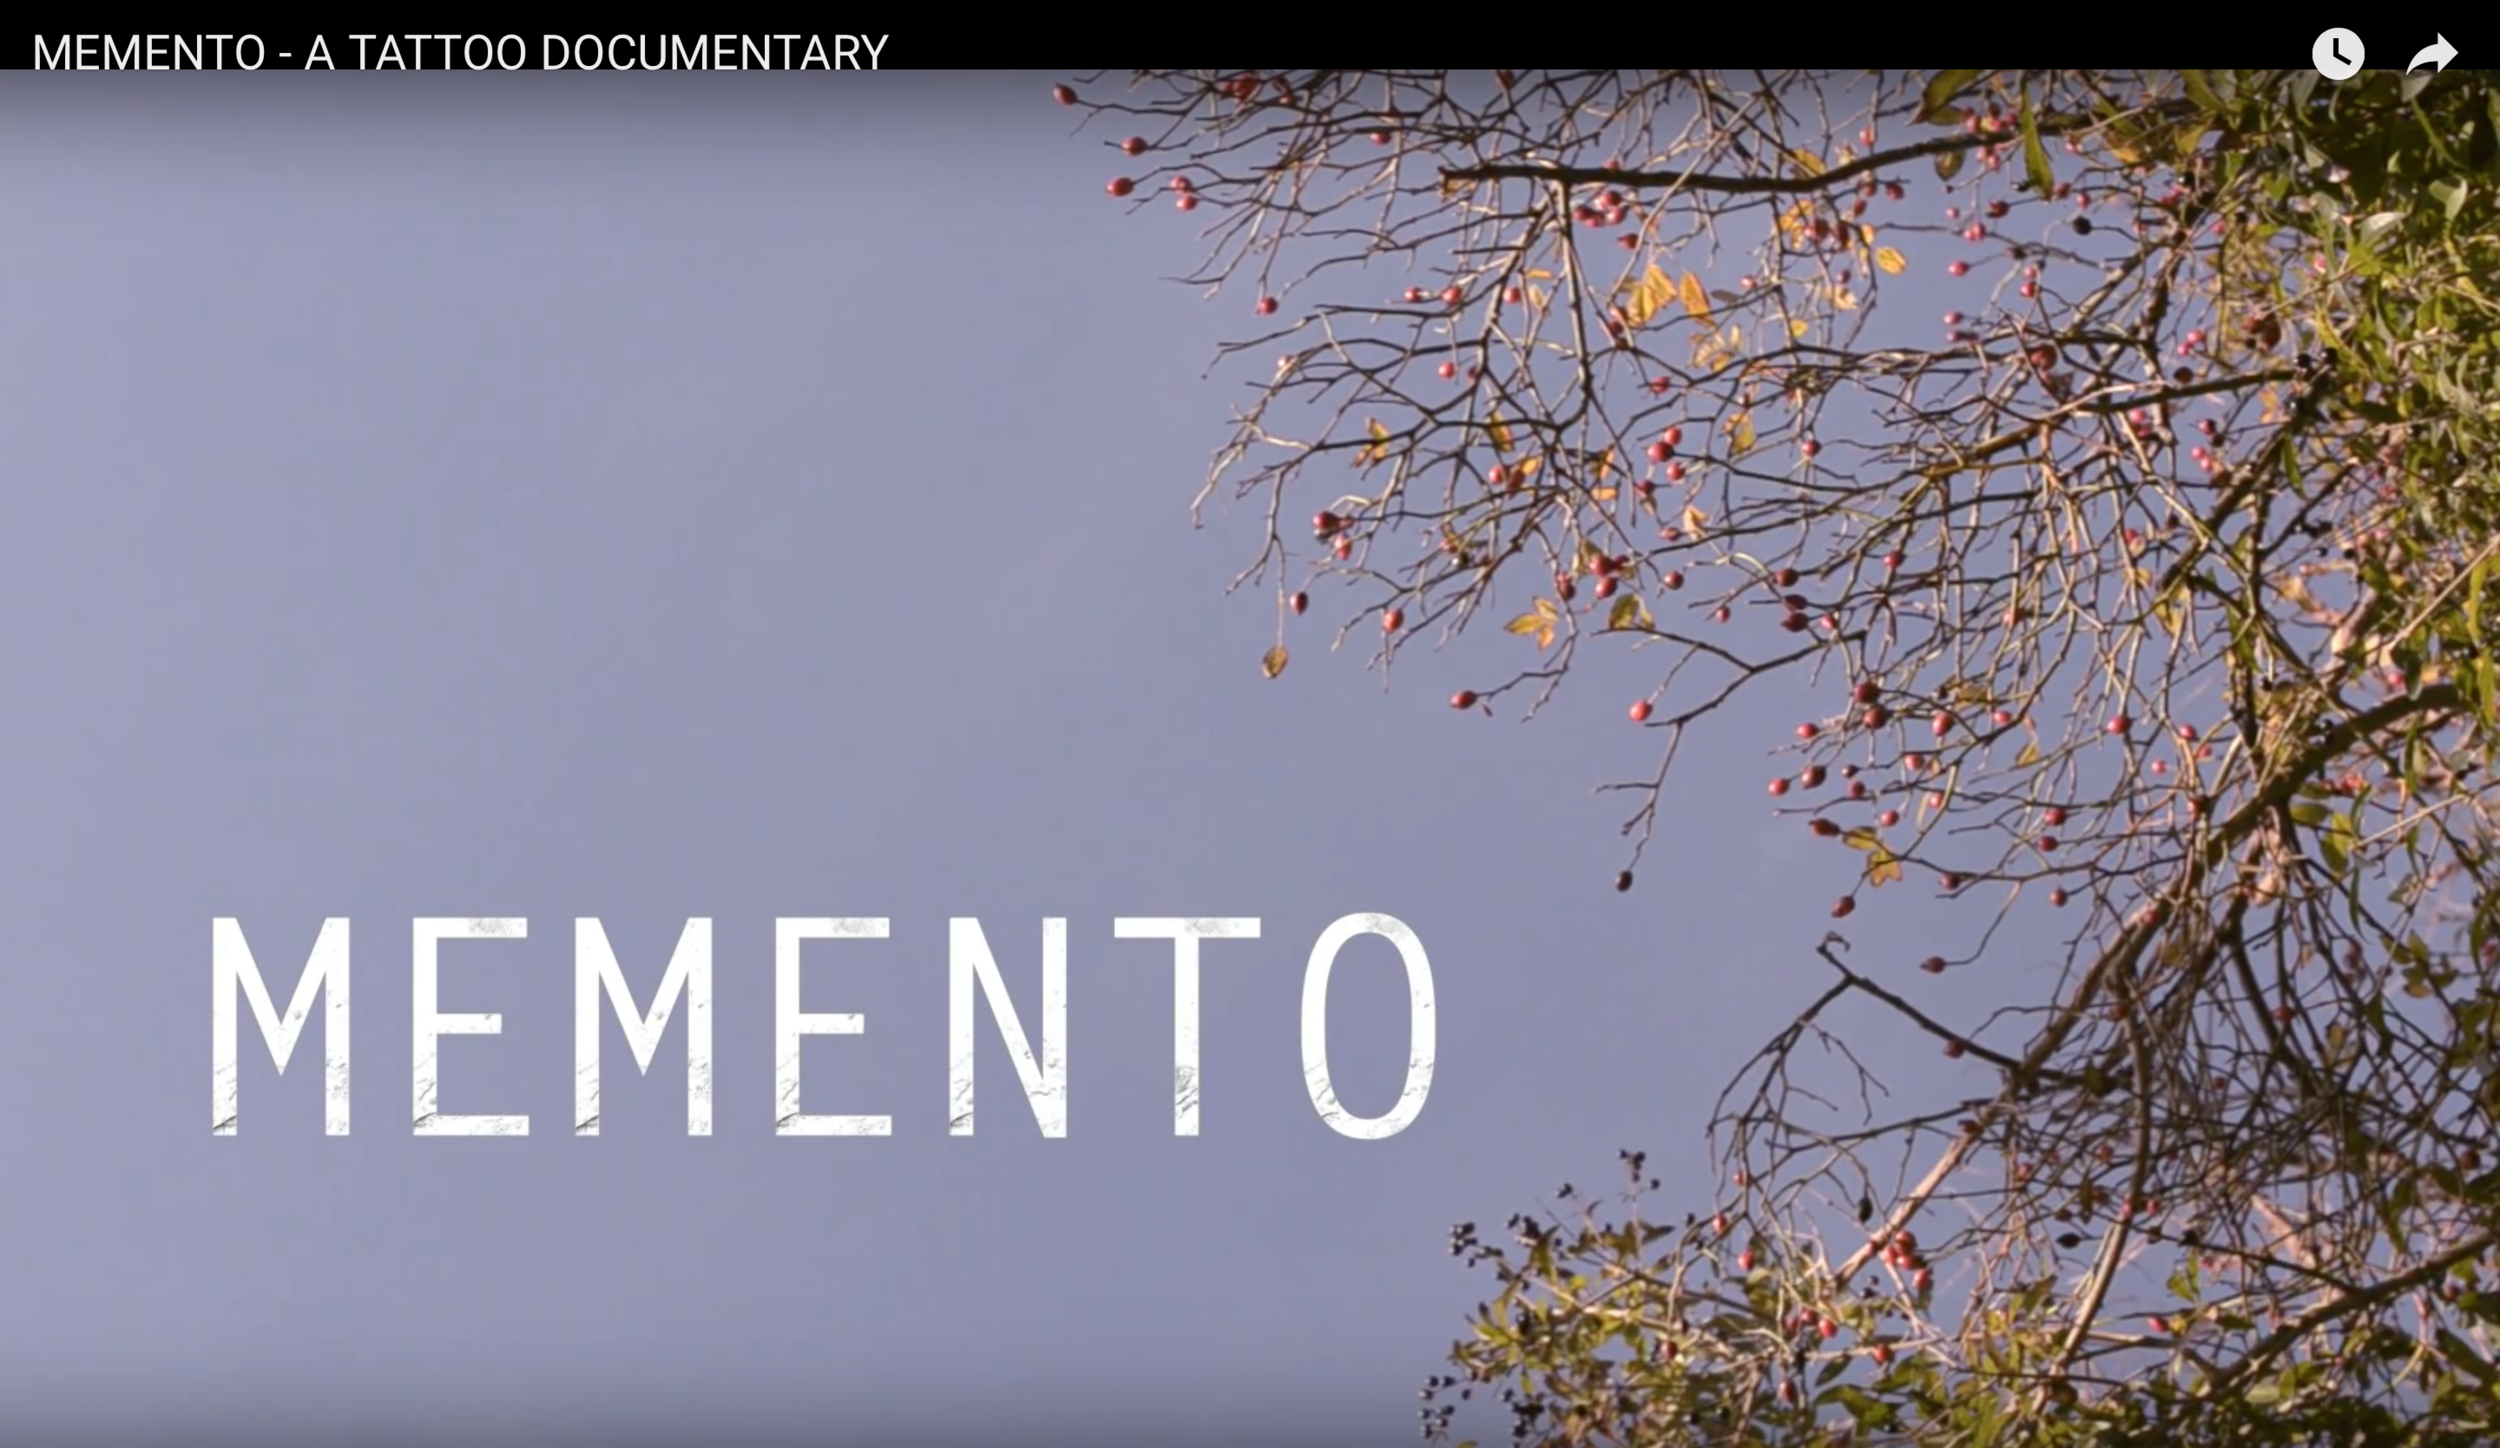 Memento - Tattoo Documentary Film